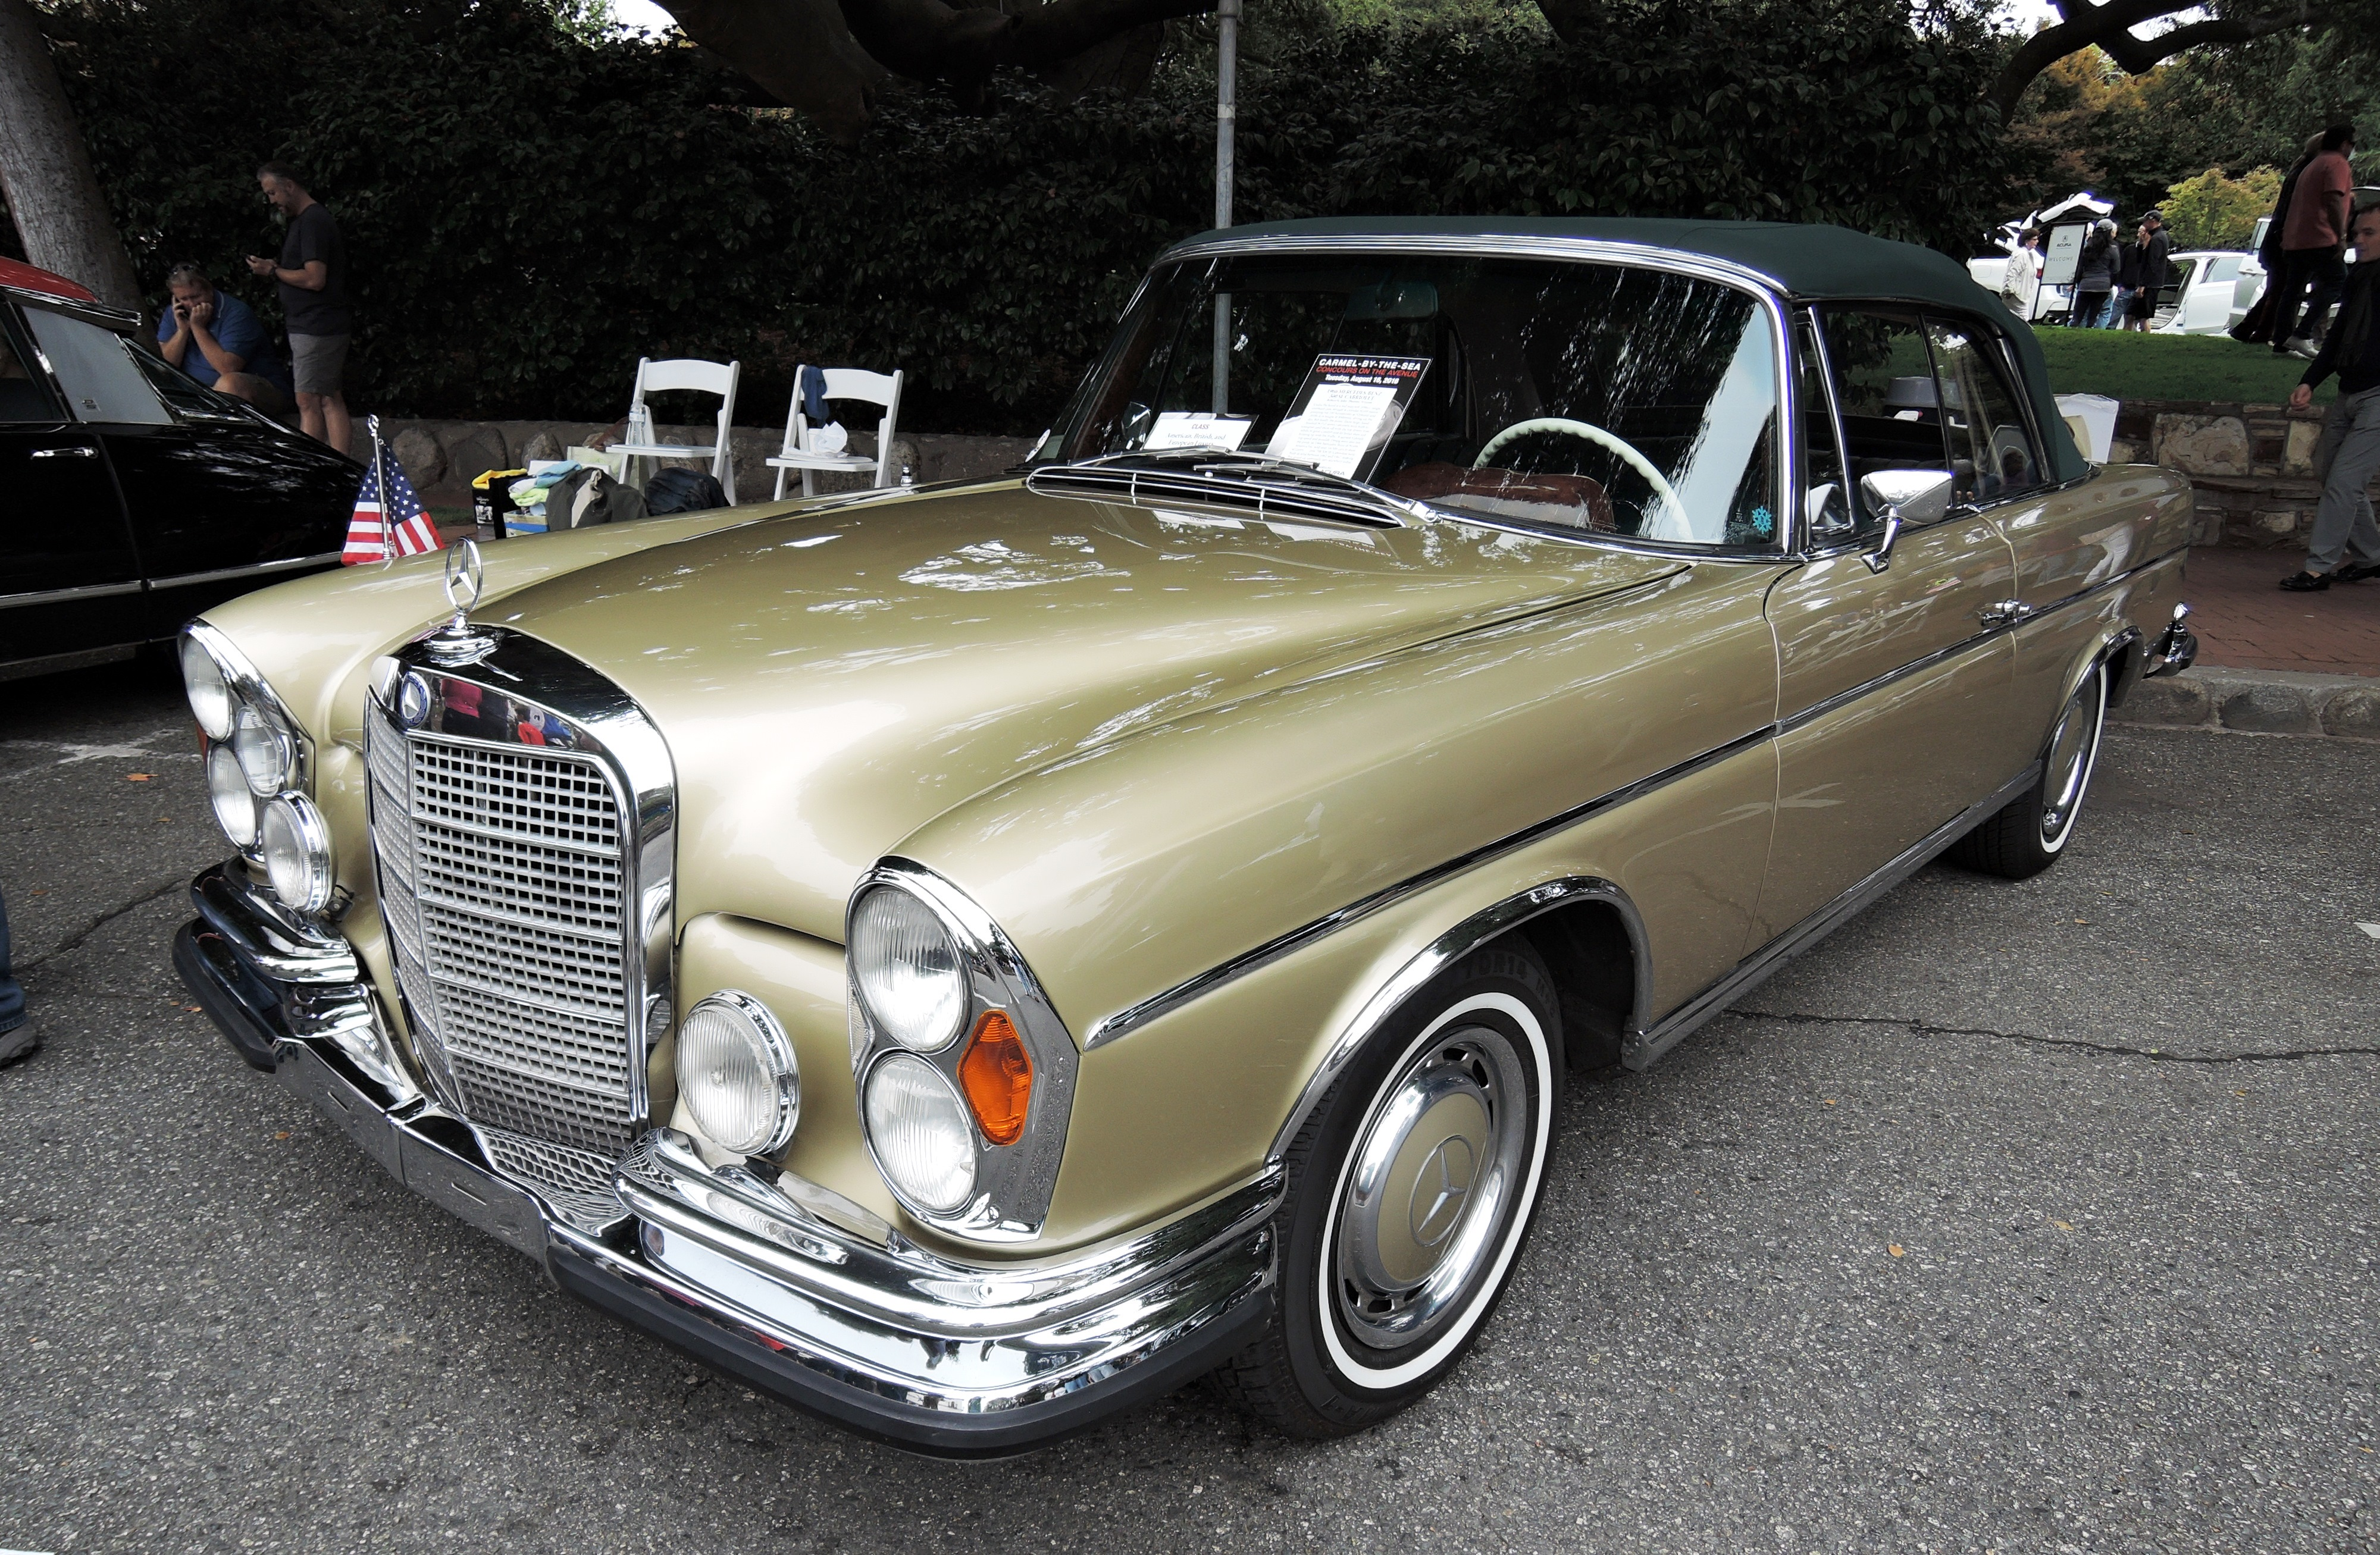 gold/green 1966 Mercedes-Benz 300 SE Cabriolet - Concours on the Ave Carmel